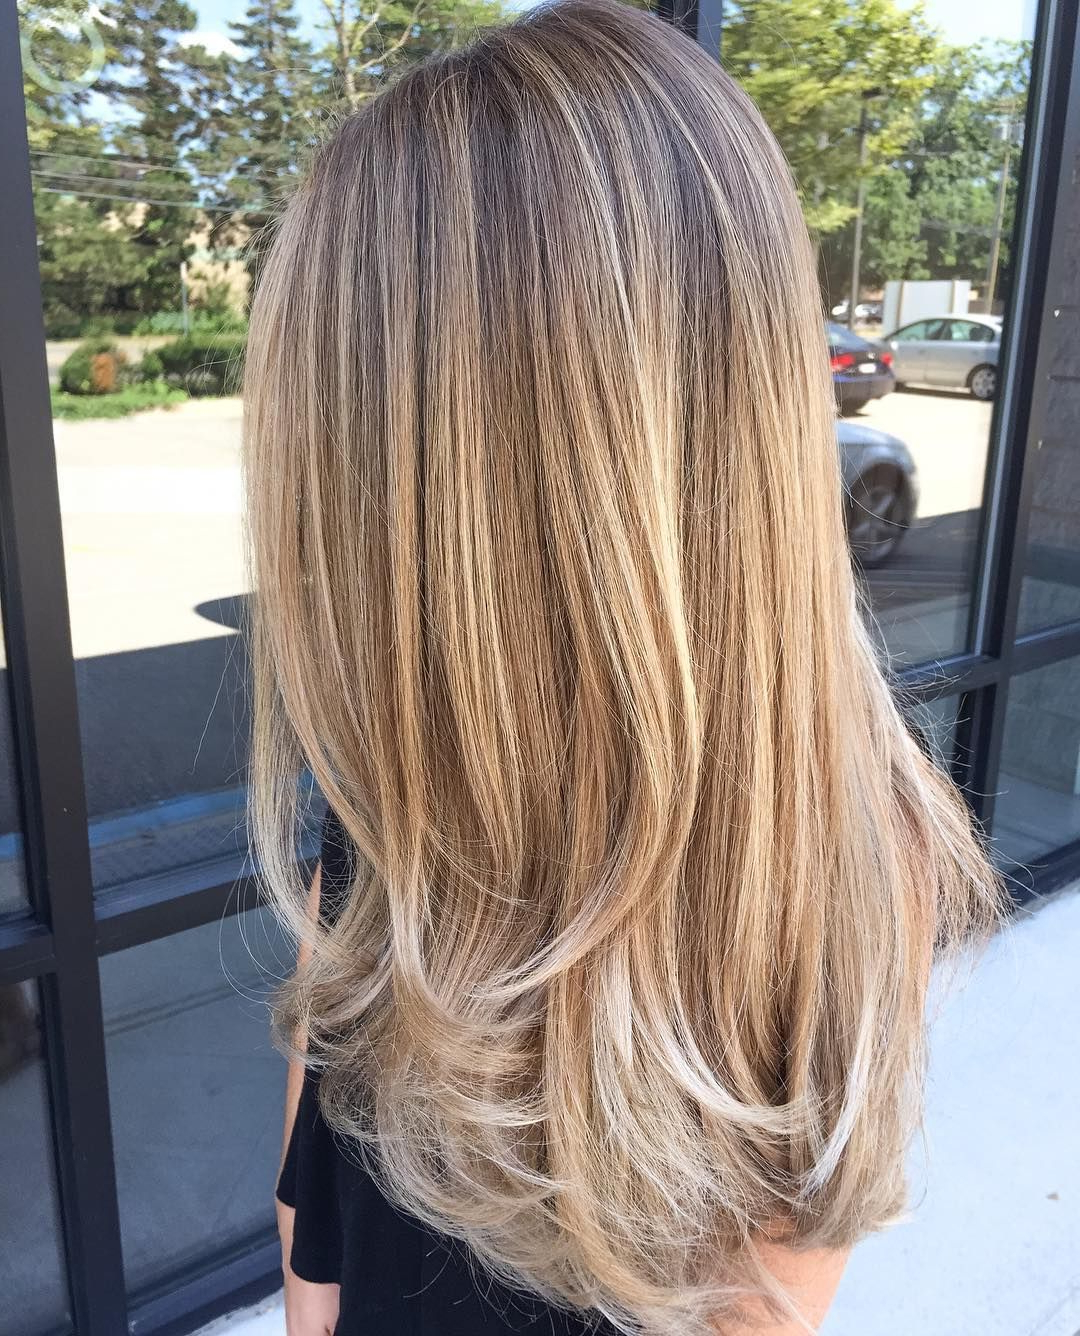 Well Liked Lovely Golden Blonde Haircuts With Swoopy Layers For 69 Cute Layered Hairstyles And Cuts For Long Hair (View 4 of 20)